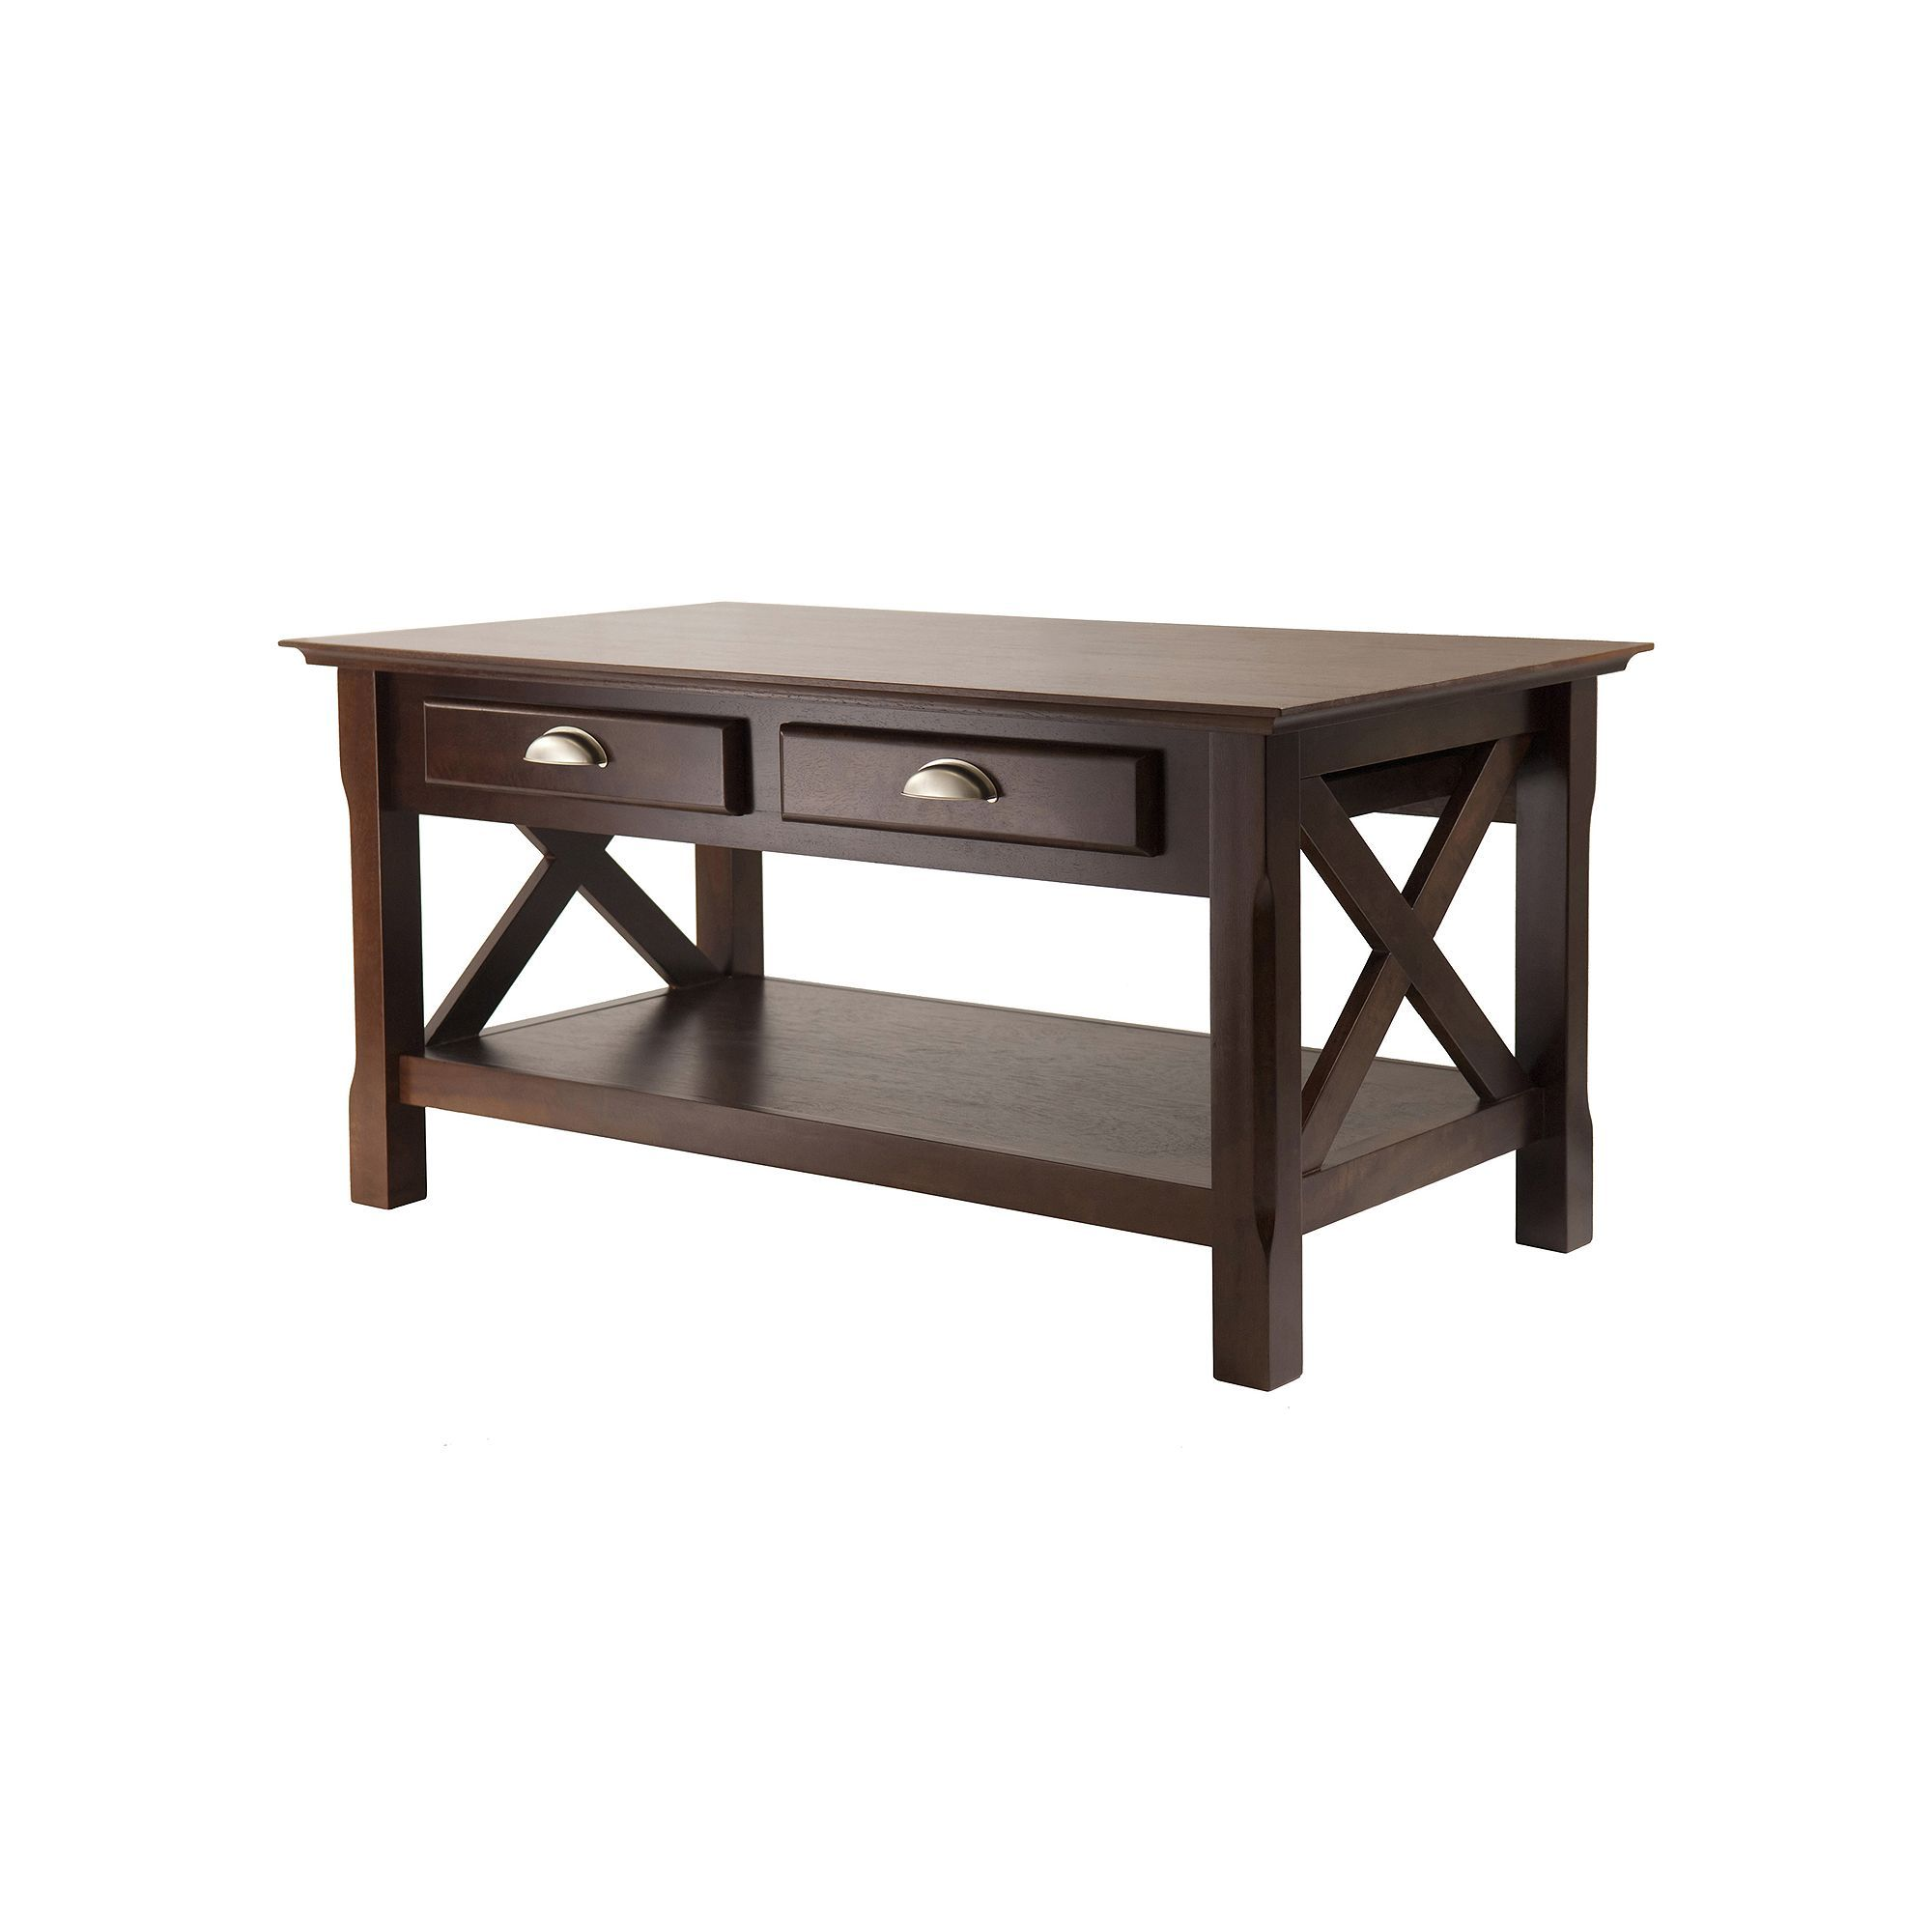 Winsome xola coffee table brown products pinterest table